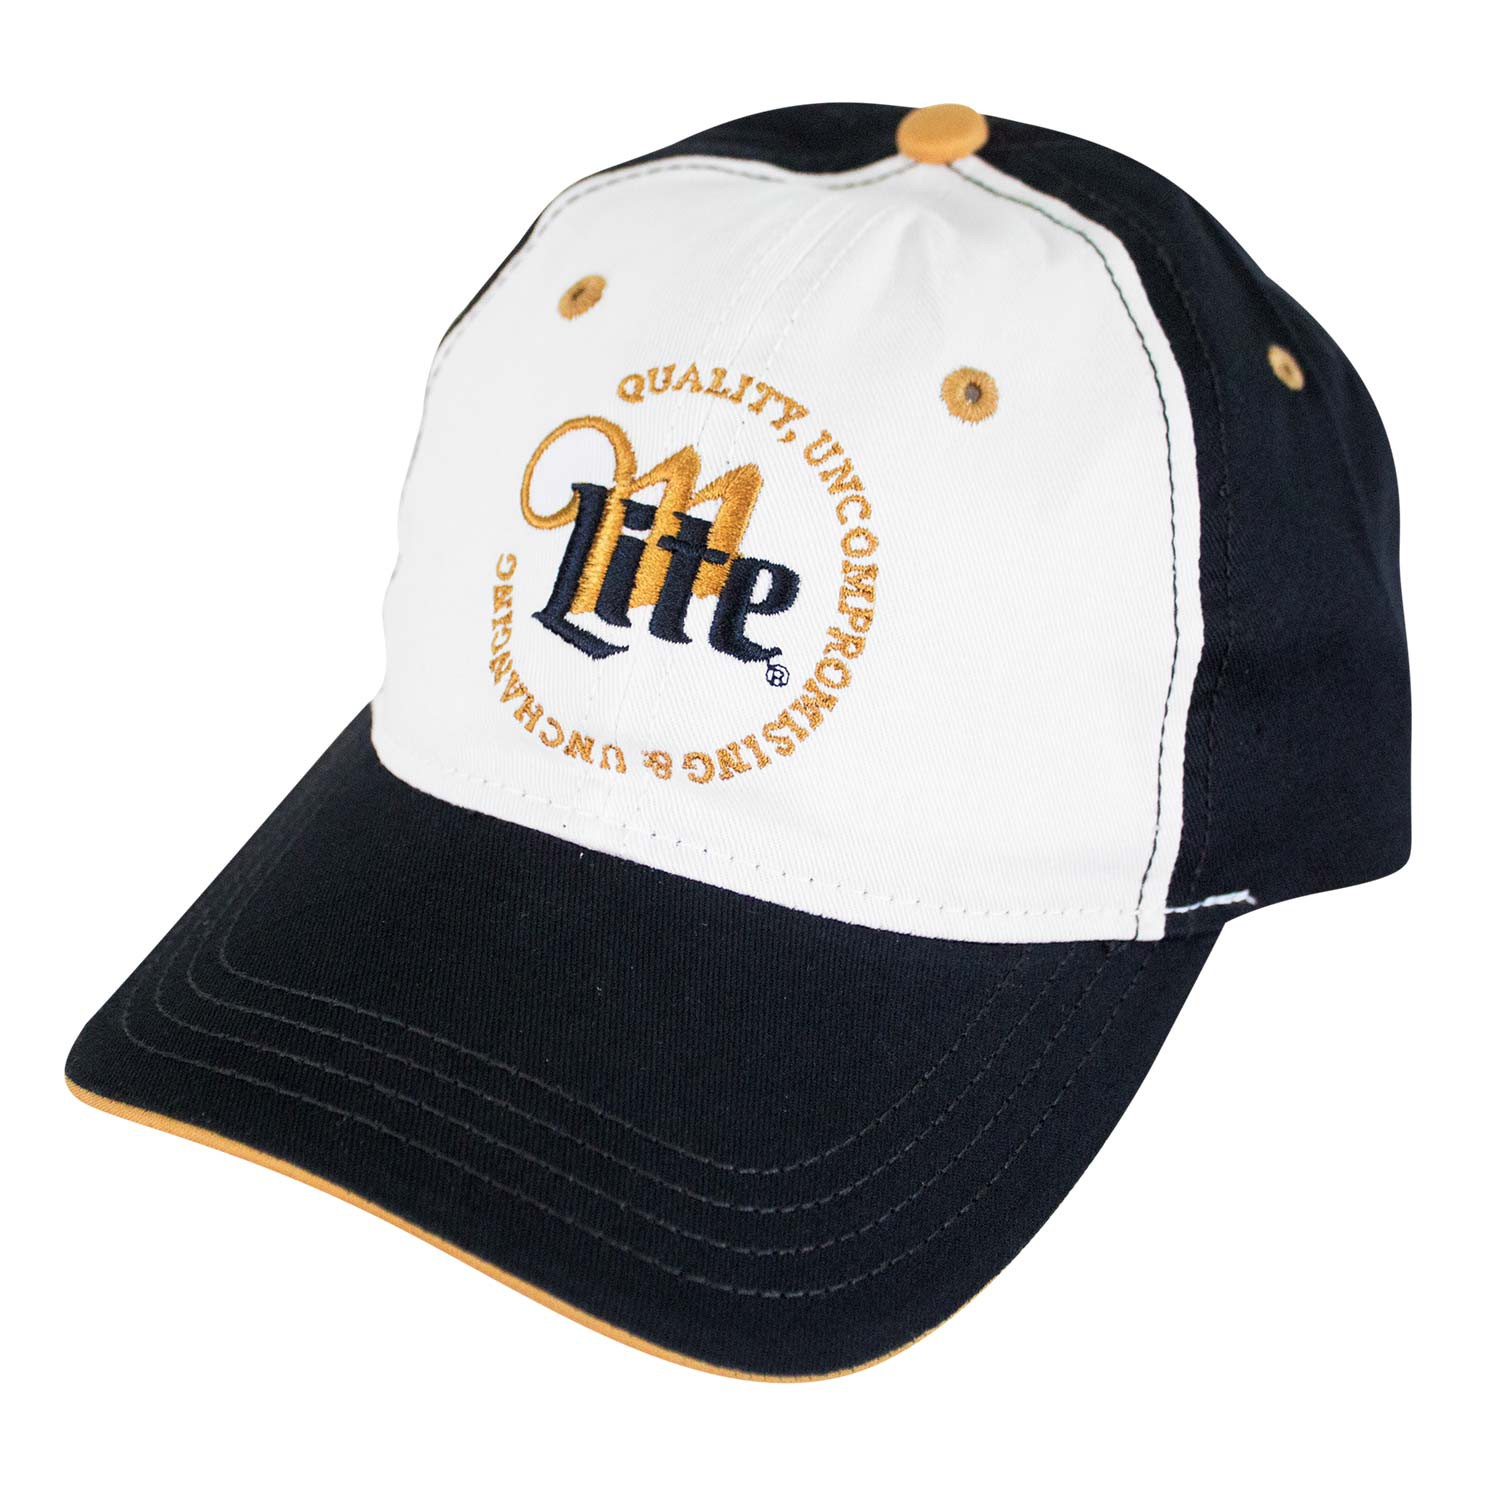 Miller Lite Quality Uncompromising & Unchanging Logo Hat